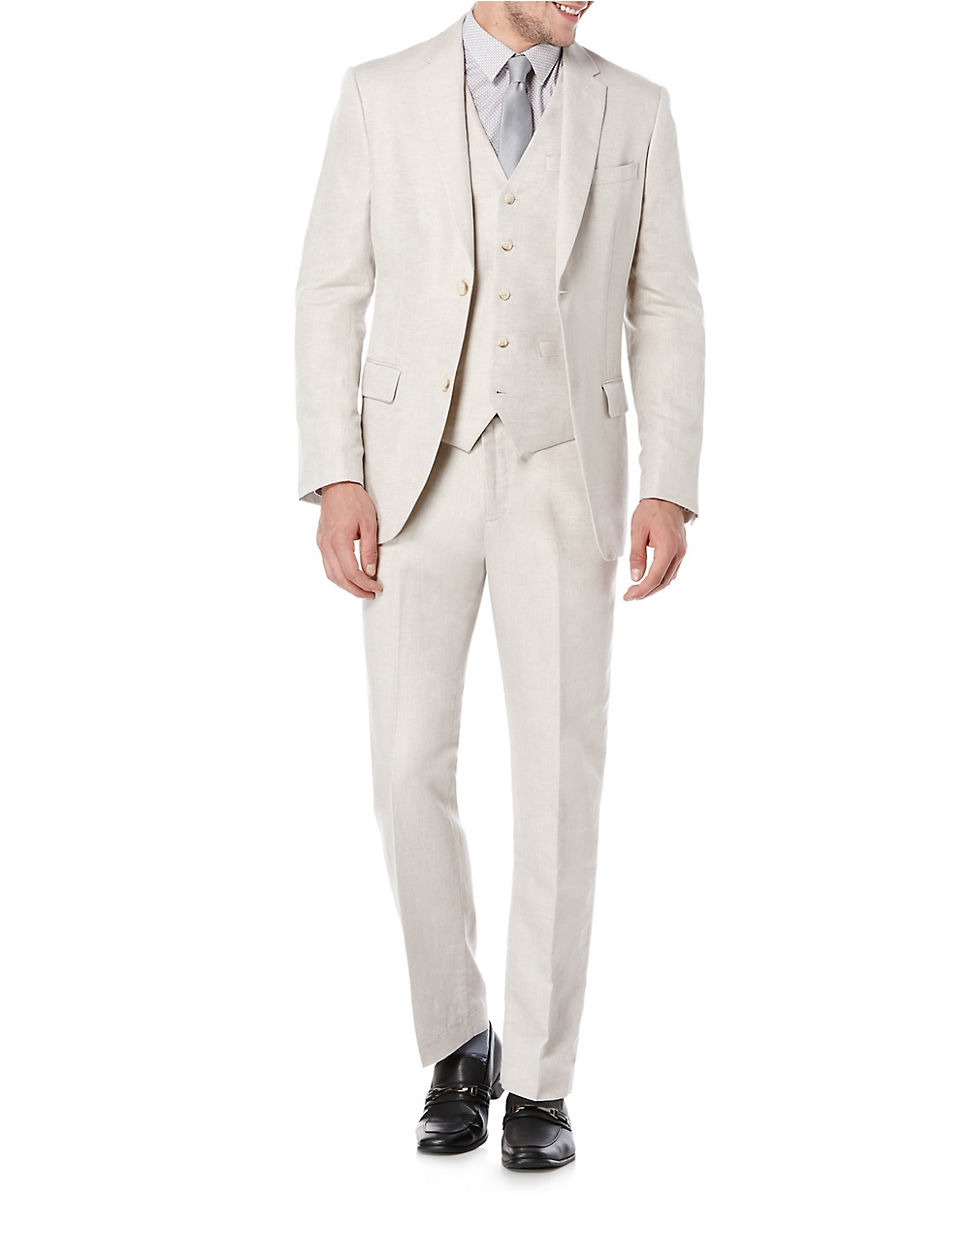 Shop for men's Big & Tall suits, sportcoats & clothing online at lindsayclewisirah.gq Browse the latest Big & Tall styles for men from Jos. A Bank. FREE shipping on orders over $